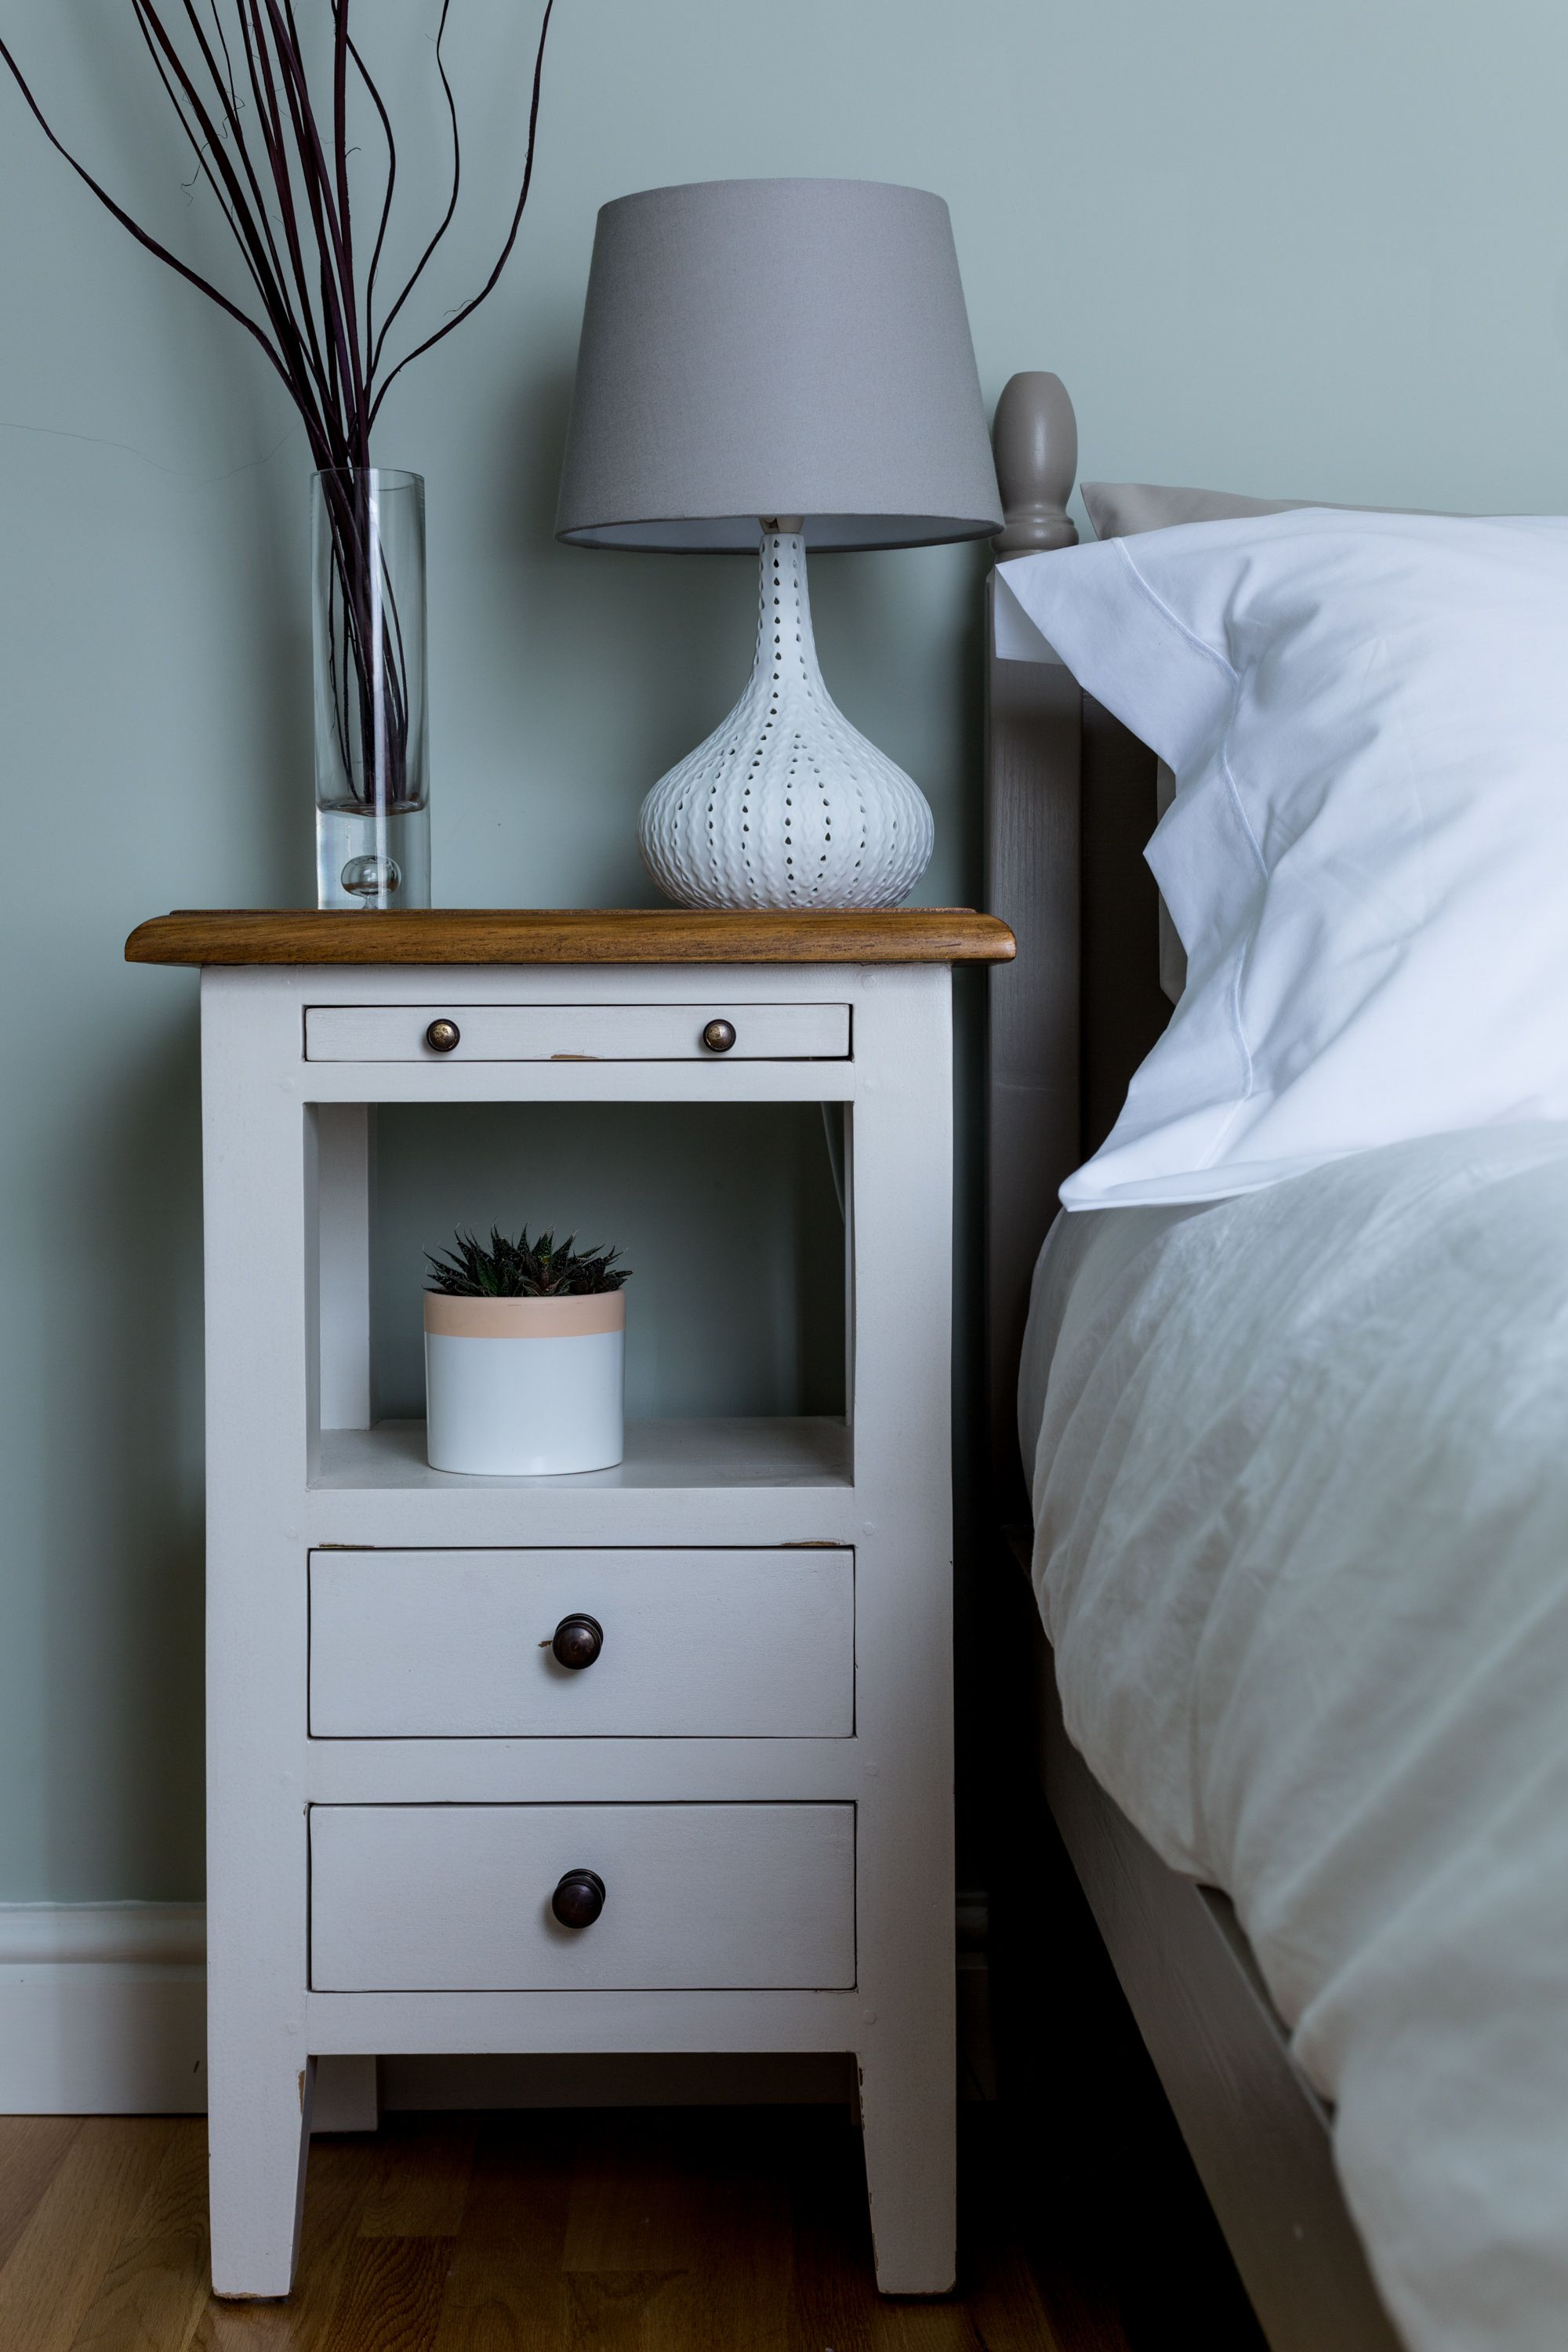 Retro Style Container Bedside Table: Bedroom Renovation, Interior, Vintage